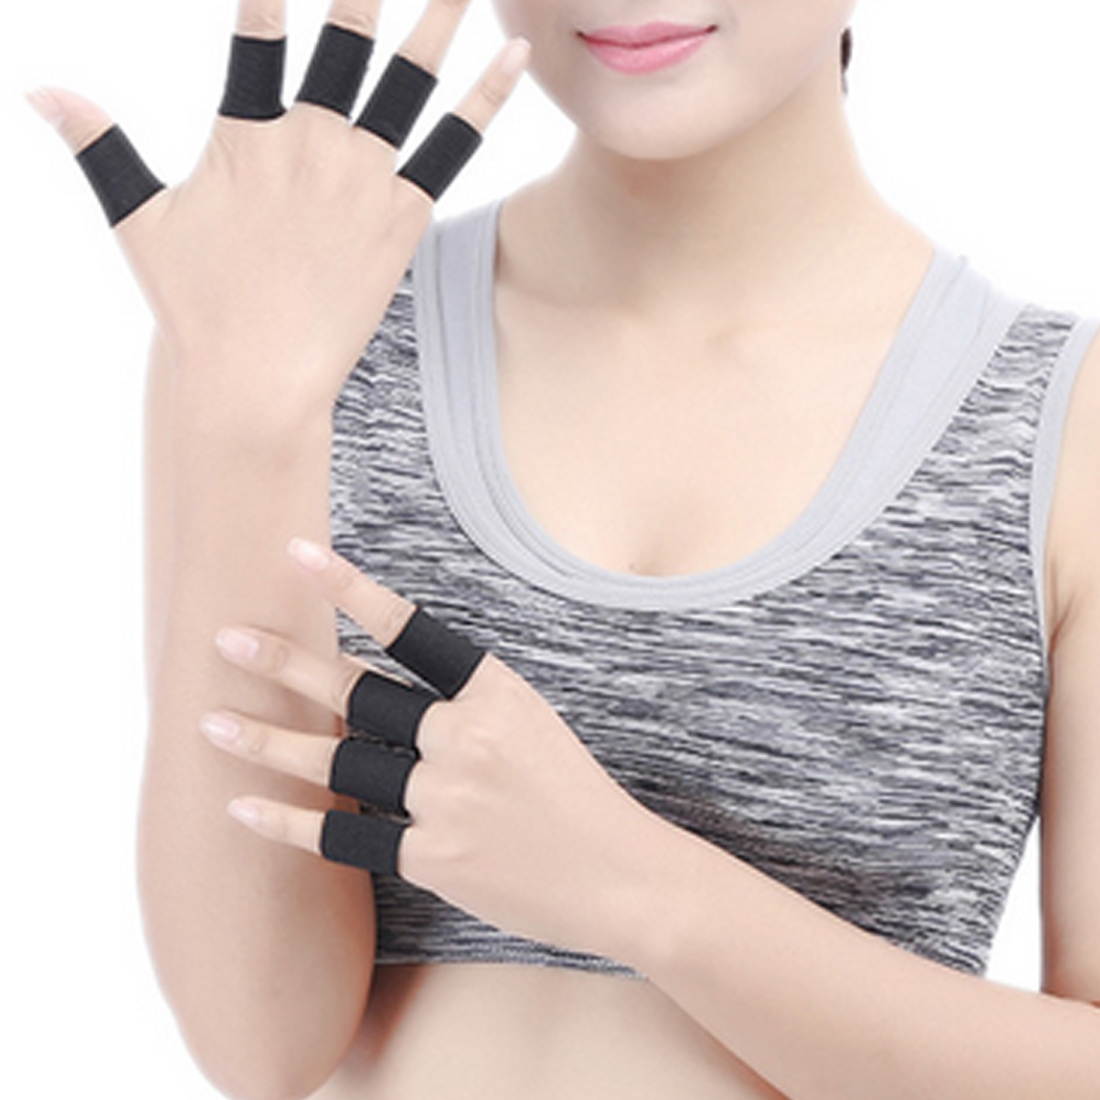 Hot Sell 10Pcs Finger Protector Sleeve Support Basketball Sports Aid Arthritis Band Wraps Finger Sleeves